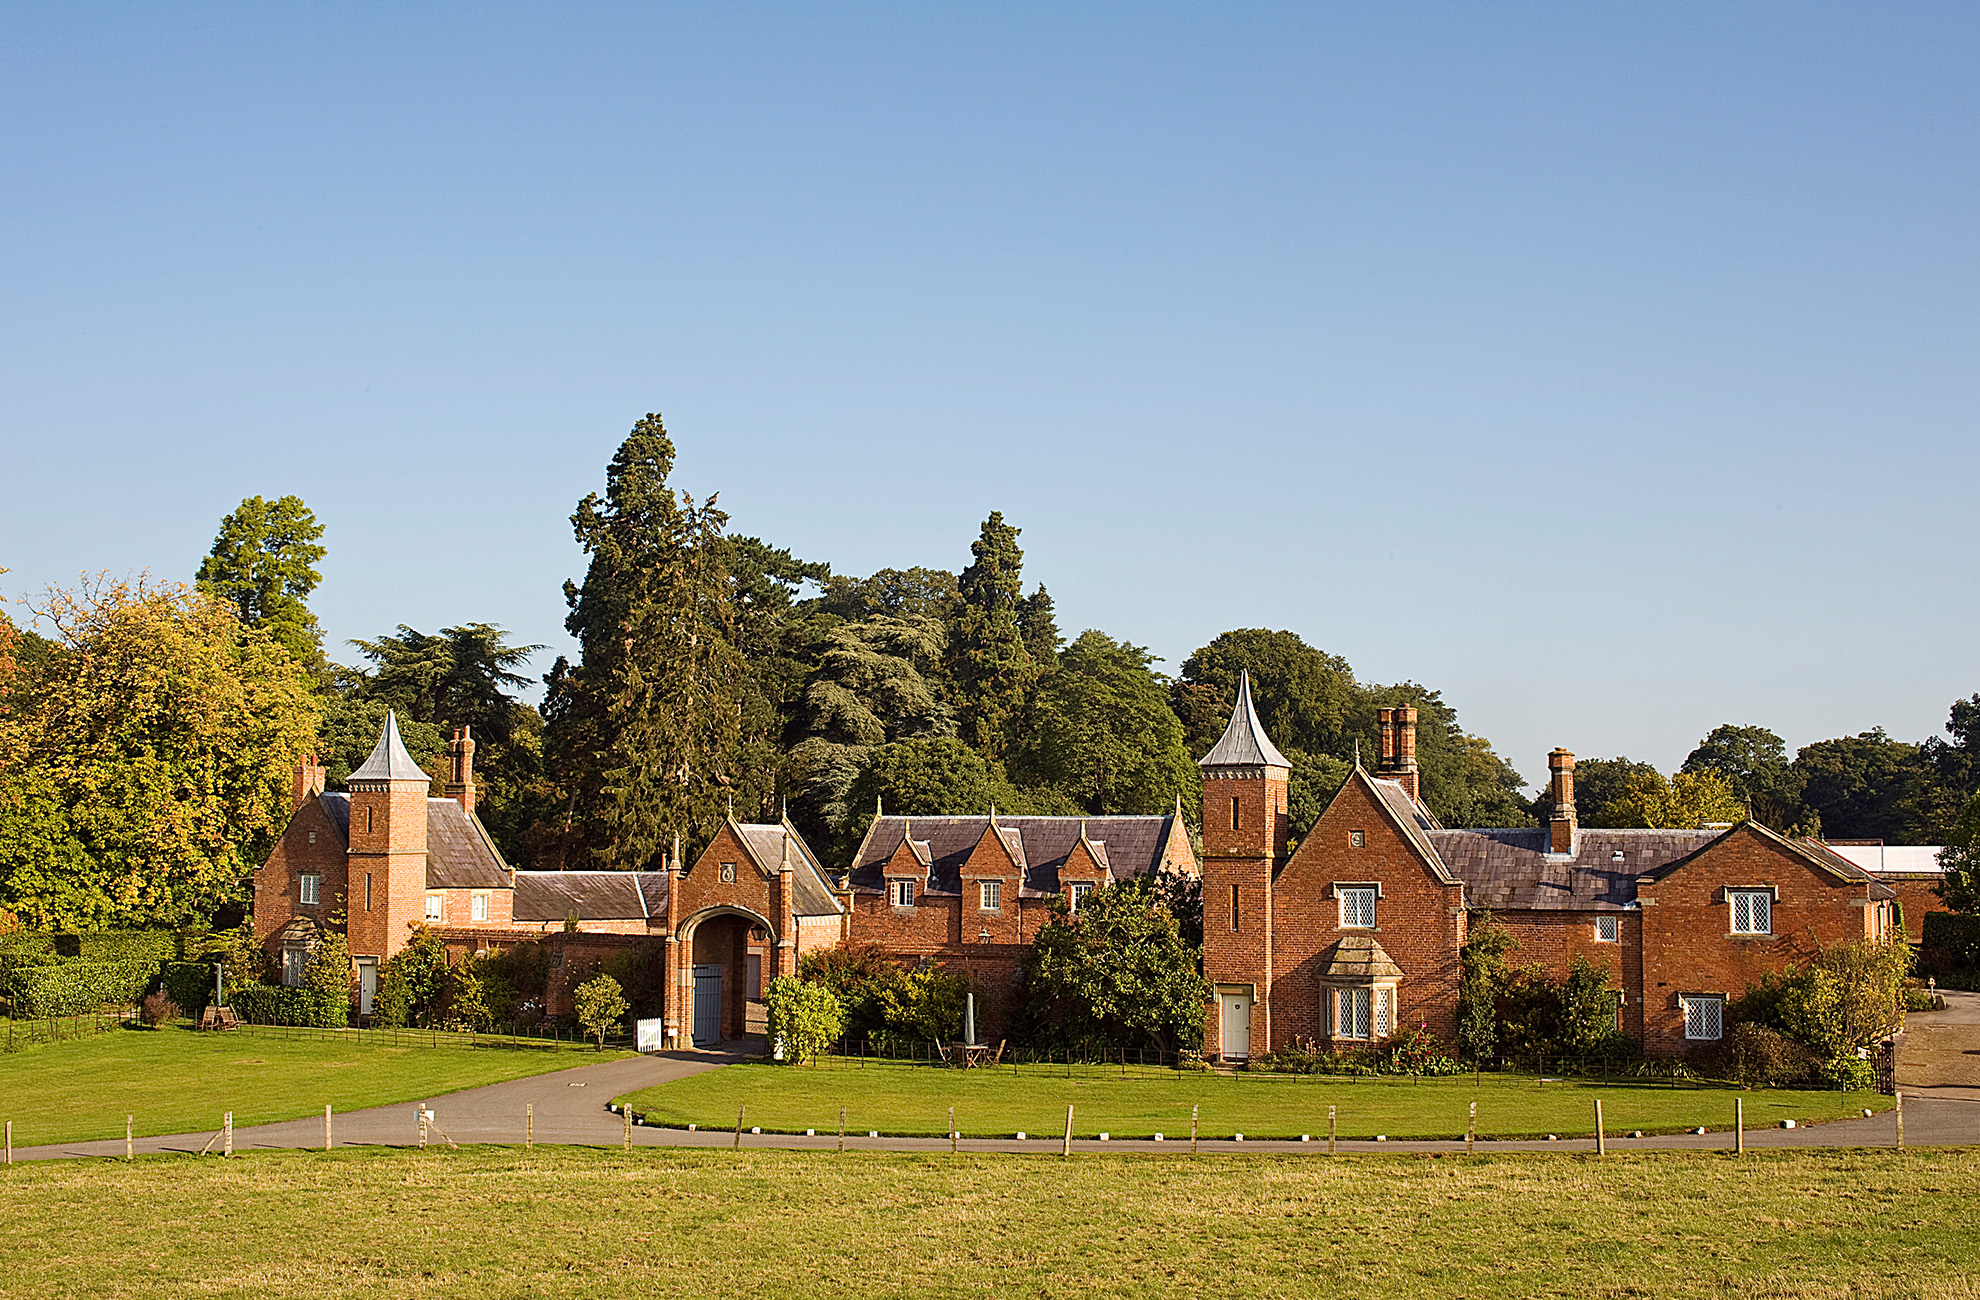 The self catering accommodation at Combermere Abbey is a fantastic Mother's Day treat for all the family